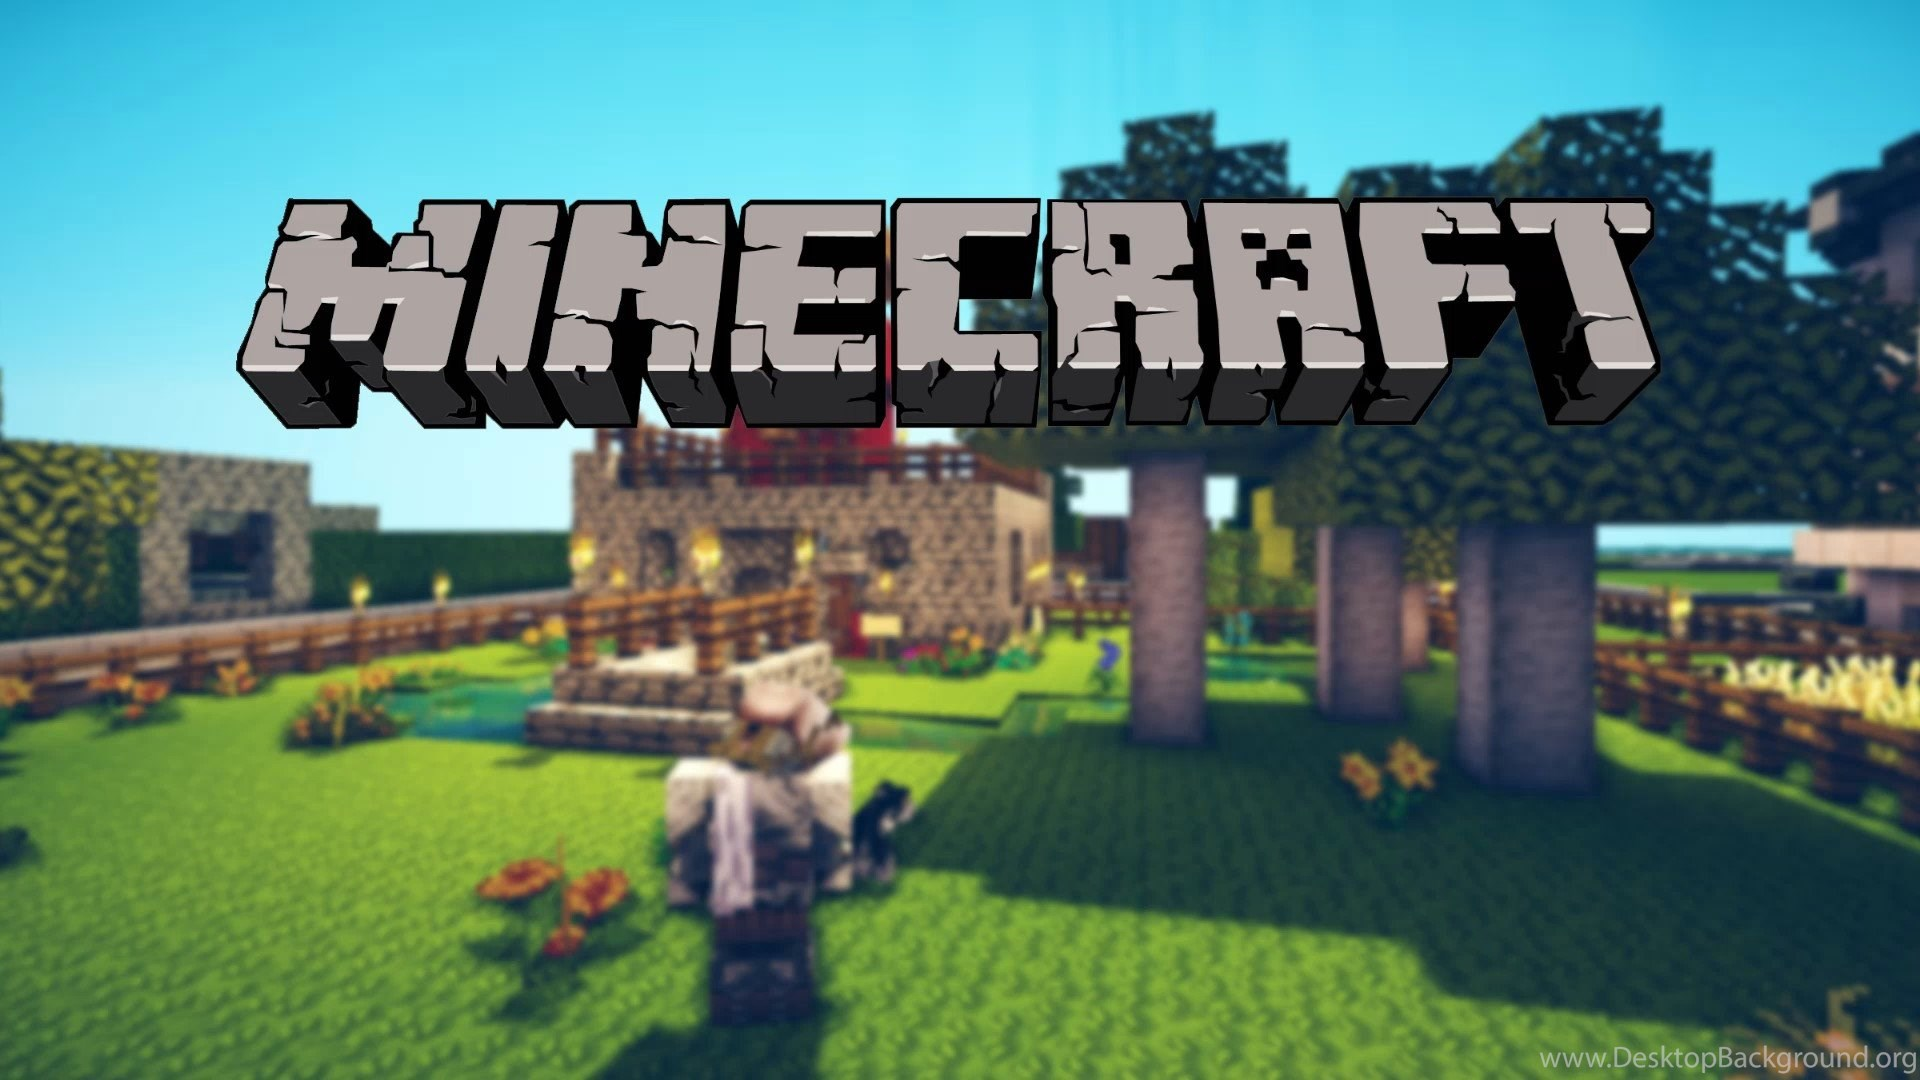 Wonderful Wallpaper Minecraft Ipod Touch - 945274_hd-minecraft-wallpapers-for-ipod_1920x1080_h  Image_725542.jpg